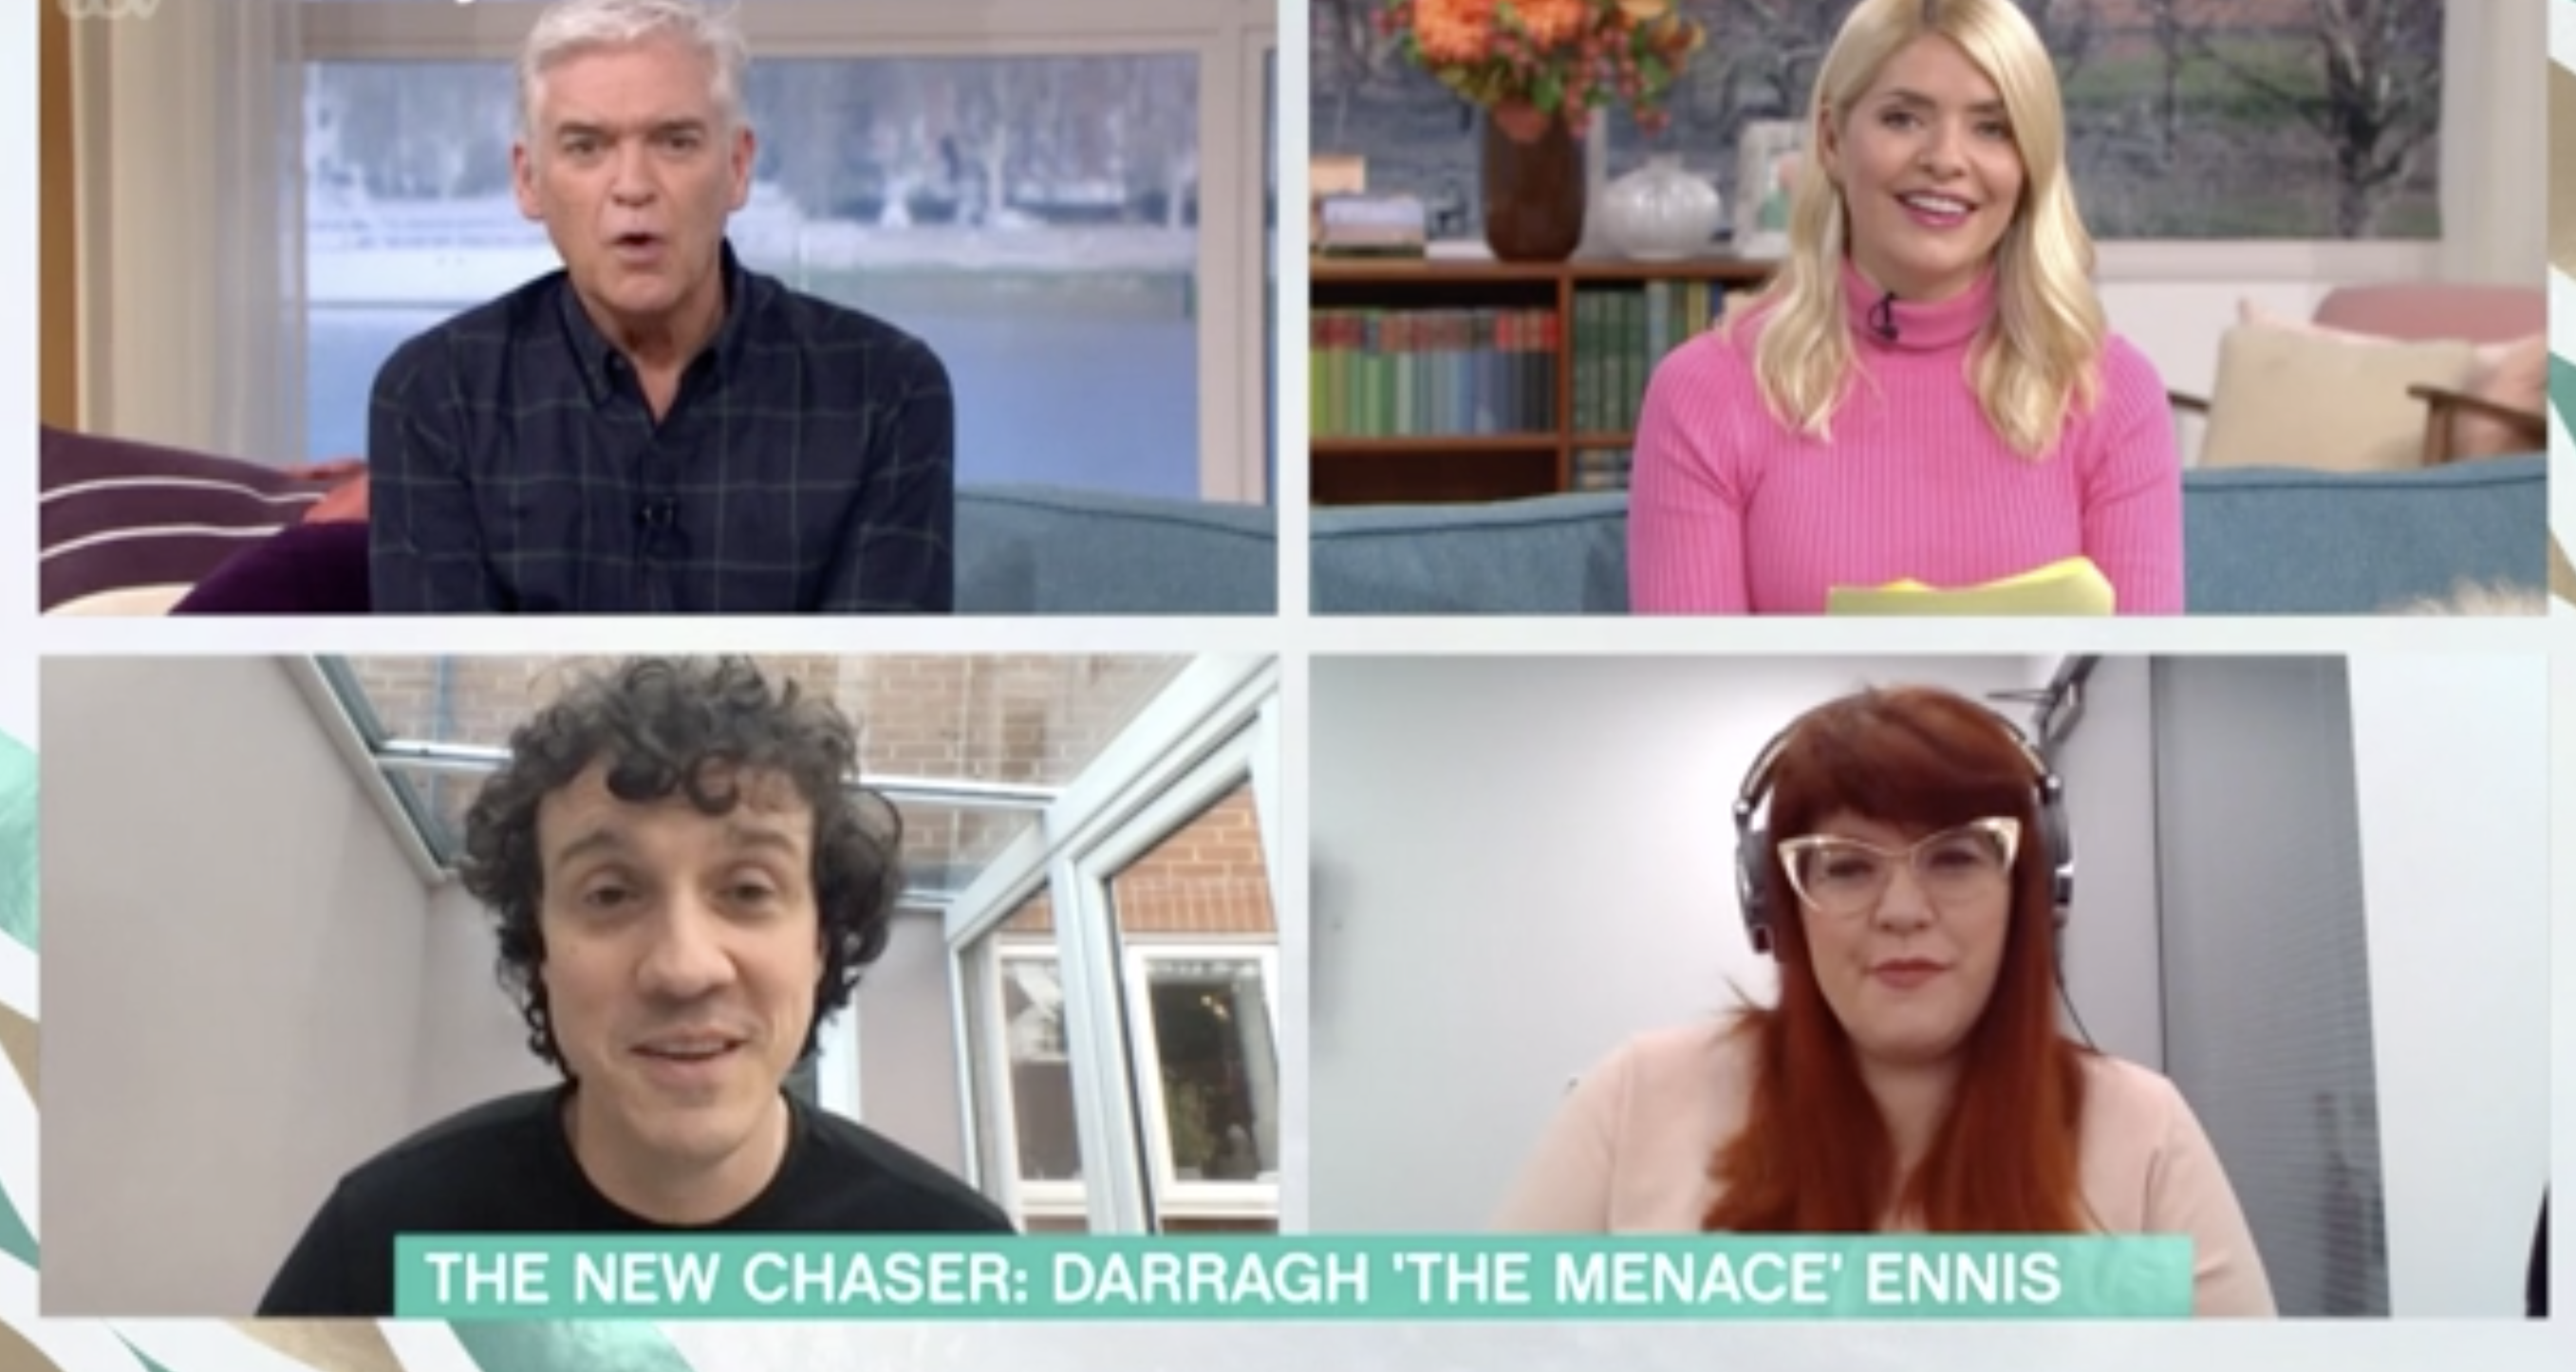 Darragh Ennis spoke about his journey to becoming a Chaser in a This Morning appearance. (ITV)